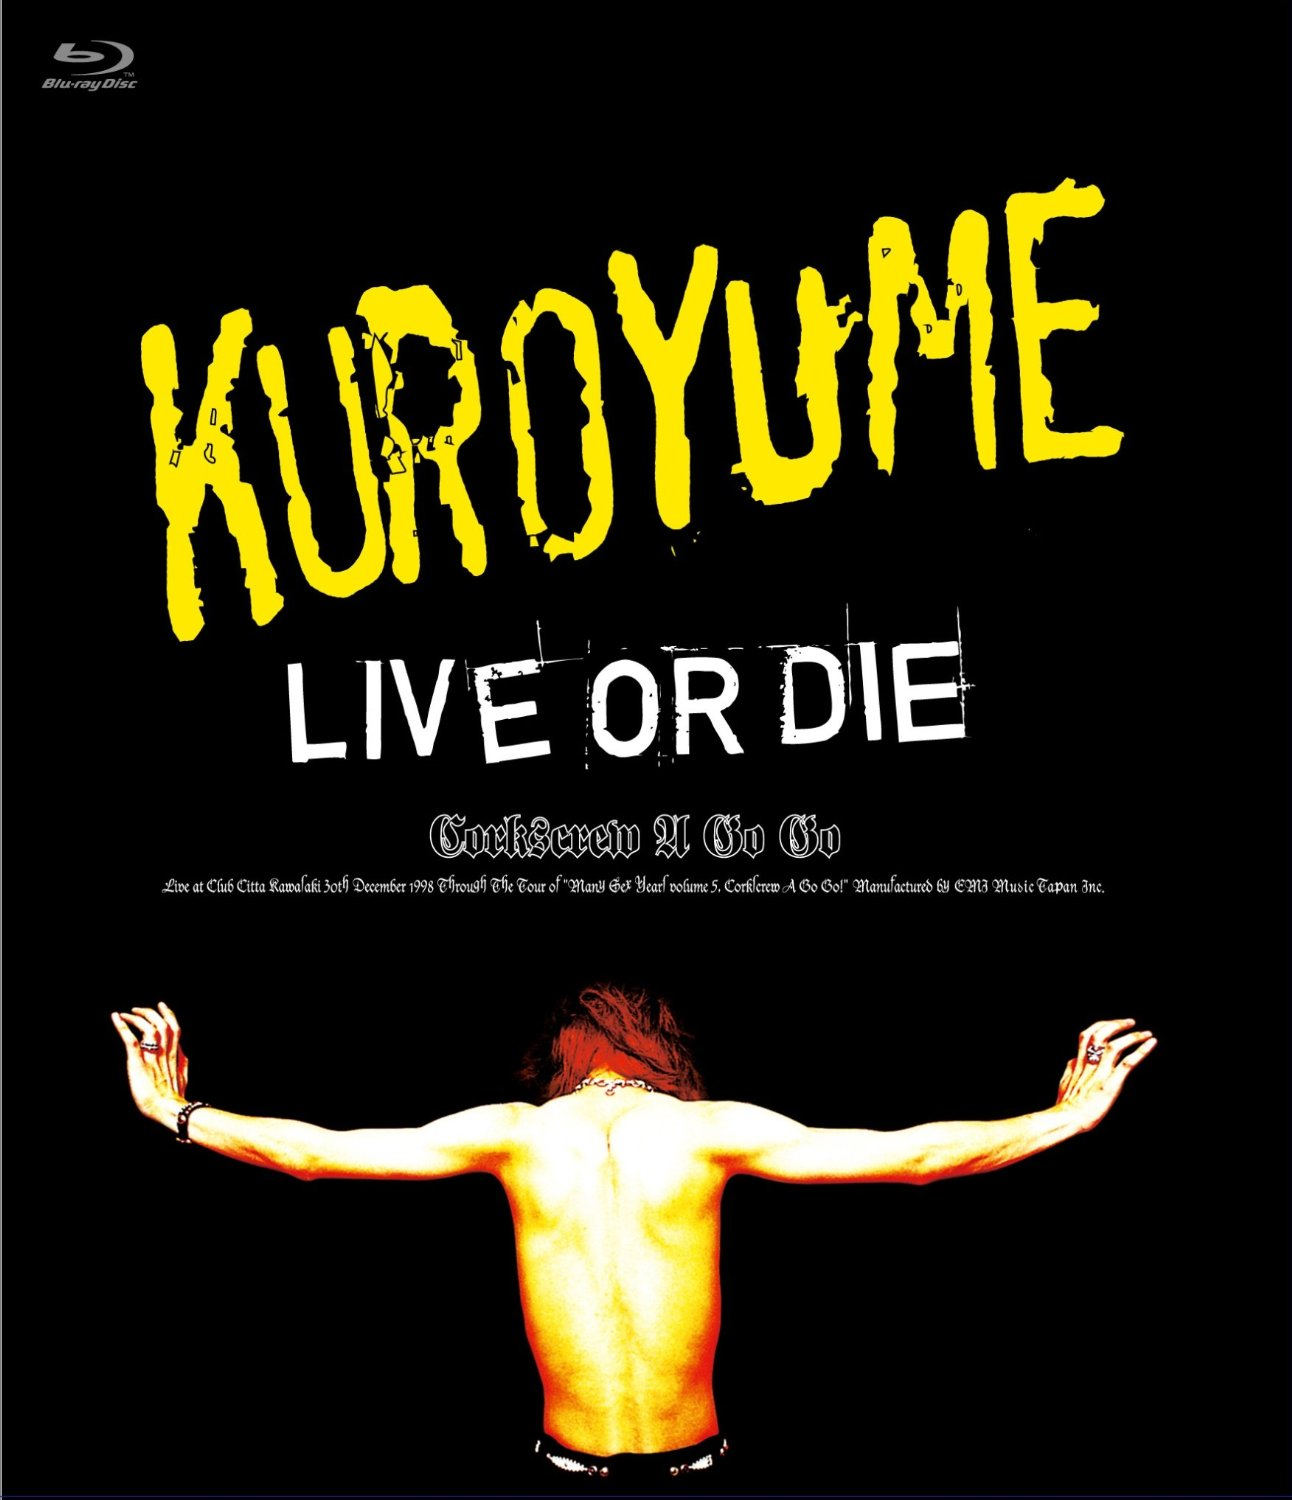 クロユメ の DVD LIVE OR DIE CORKSCREW A GO GO(ブルーレイ)